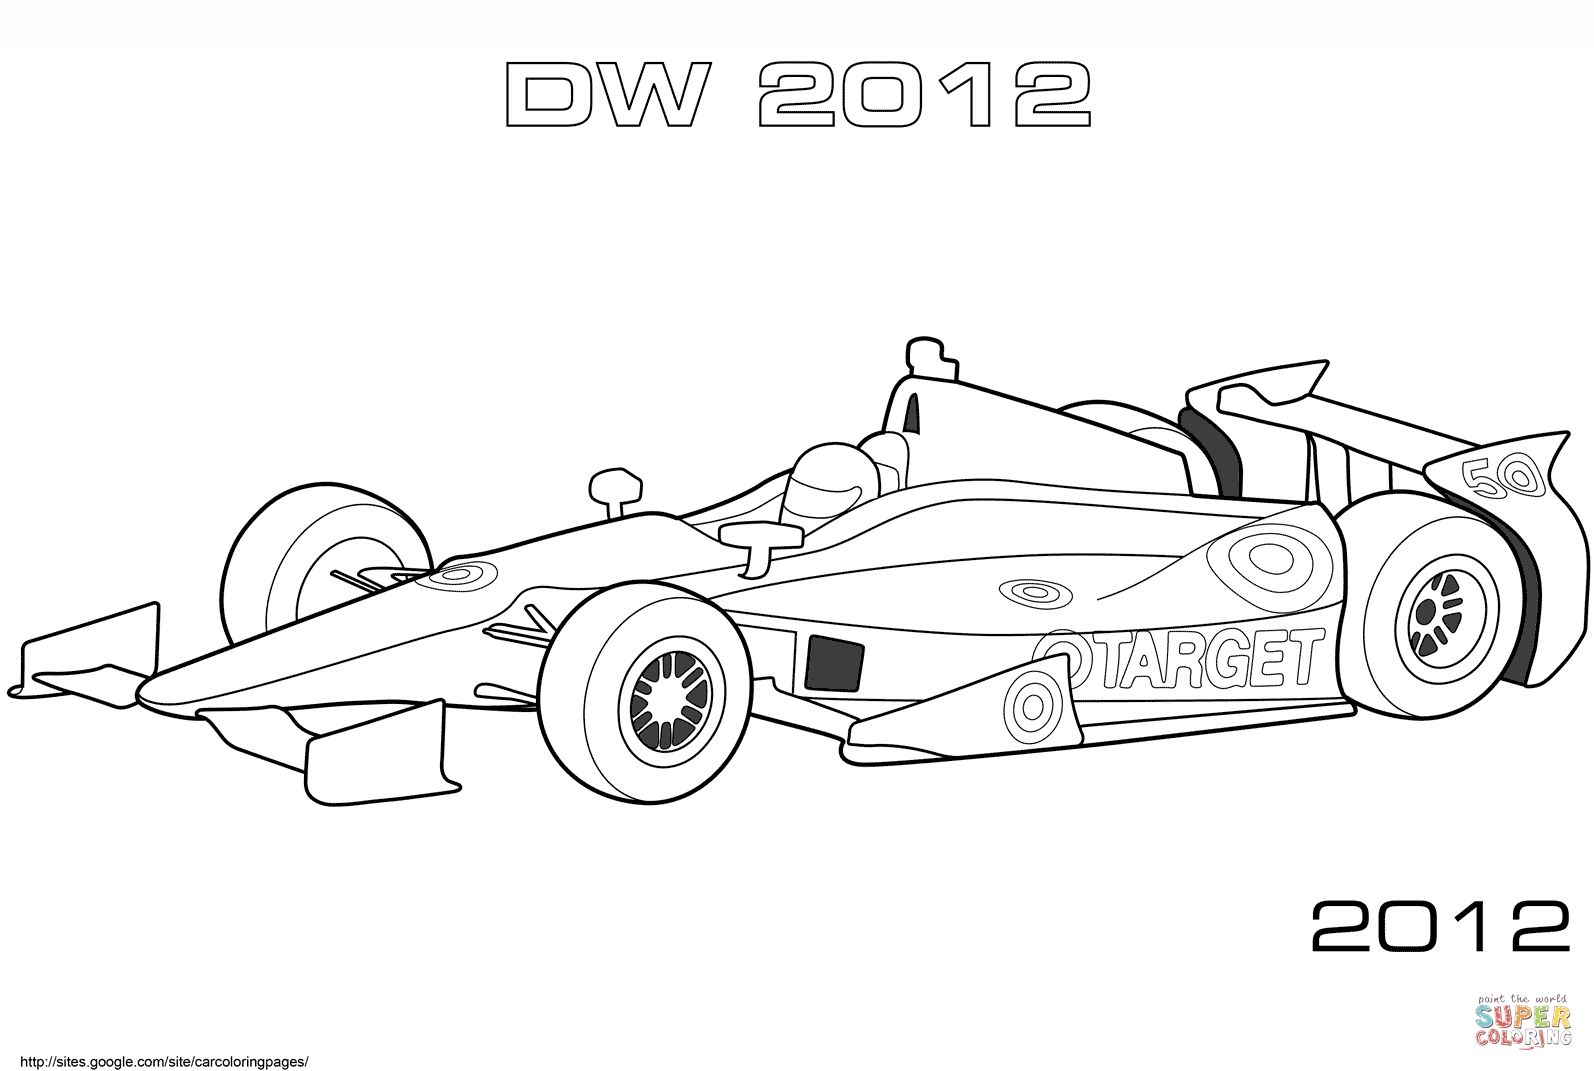 Dallara Dw12 Indy Car Coloring Pages Printable Race Car Coloring Pages Cars Coloring Pages Sports Coloring Pages